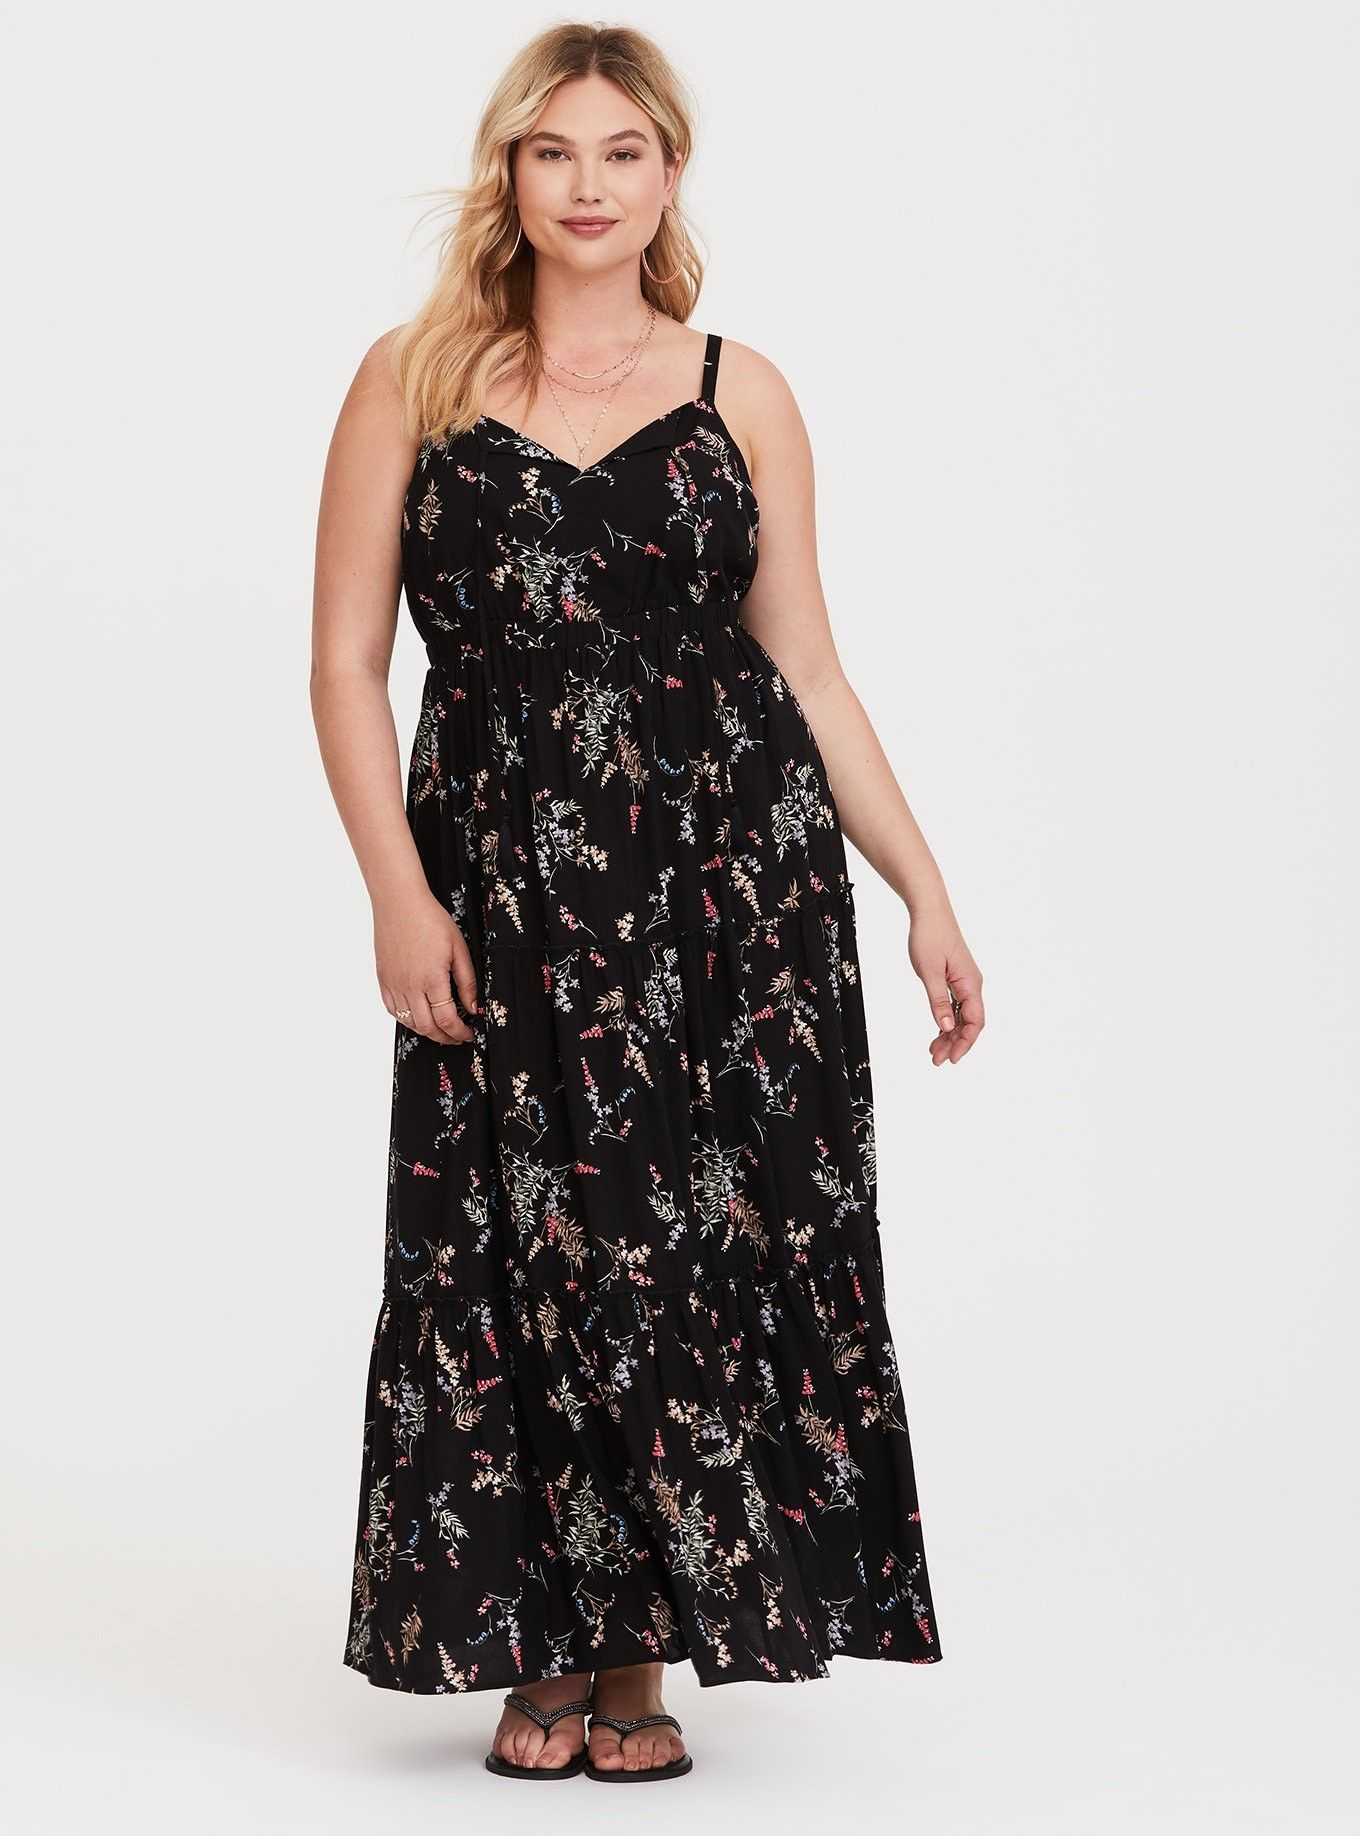 ad1a0c120c4 Black Floral Tiered Challis Maxi Dress - A stretch band defines your waist  in this form-forgiving challis dress that s soon to be your new favorite ...